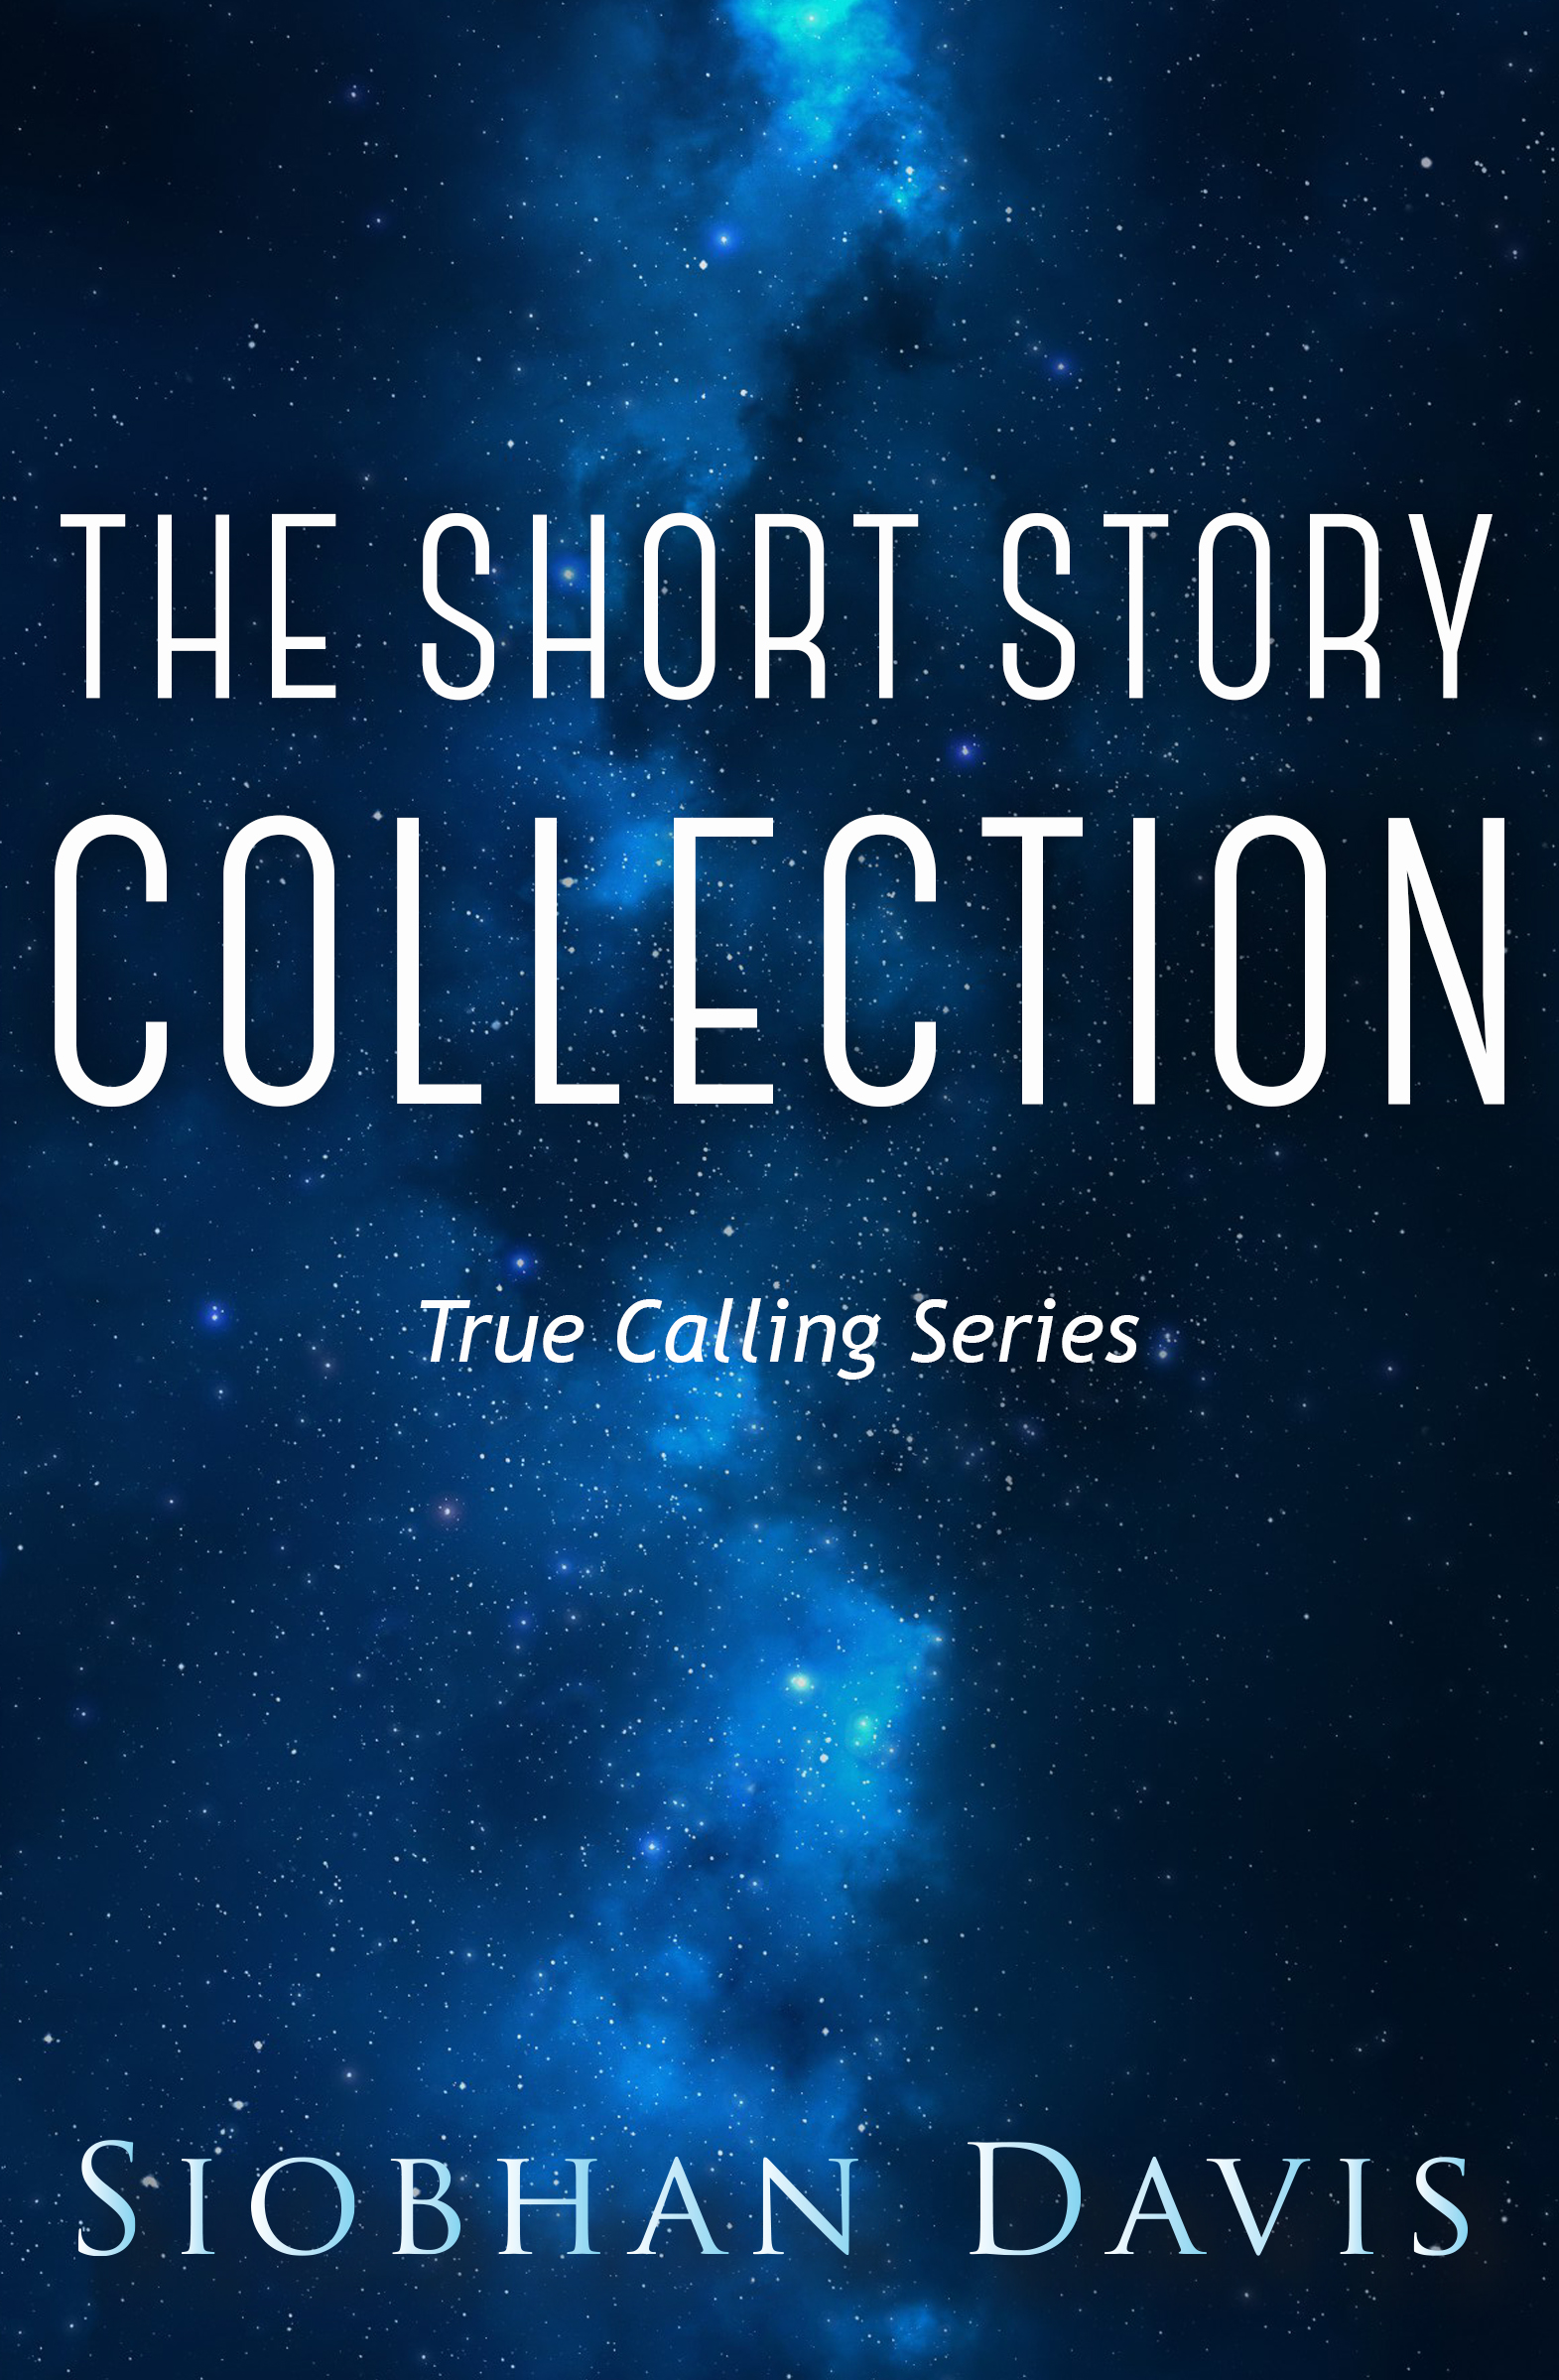 The Short Story Collection (True Calling #4)